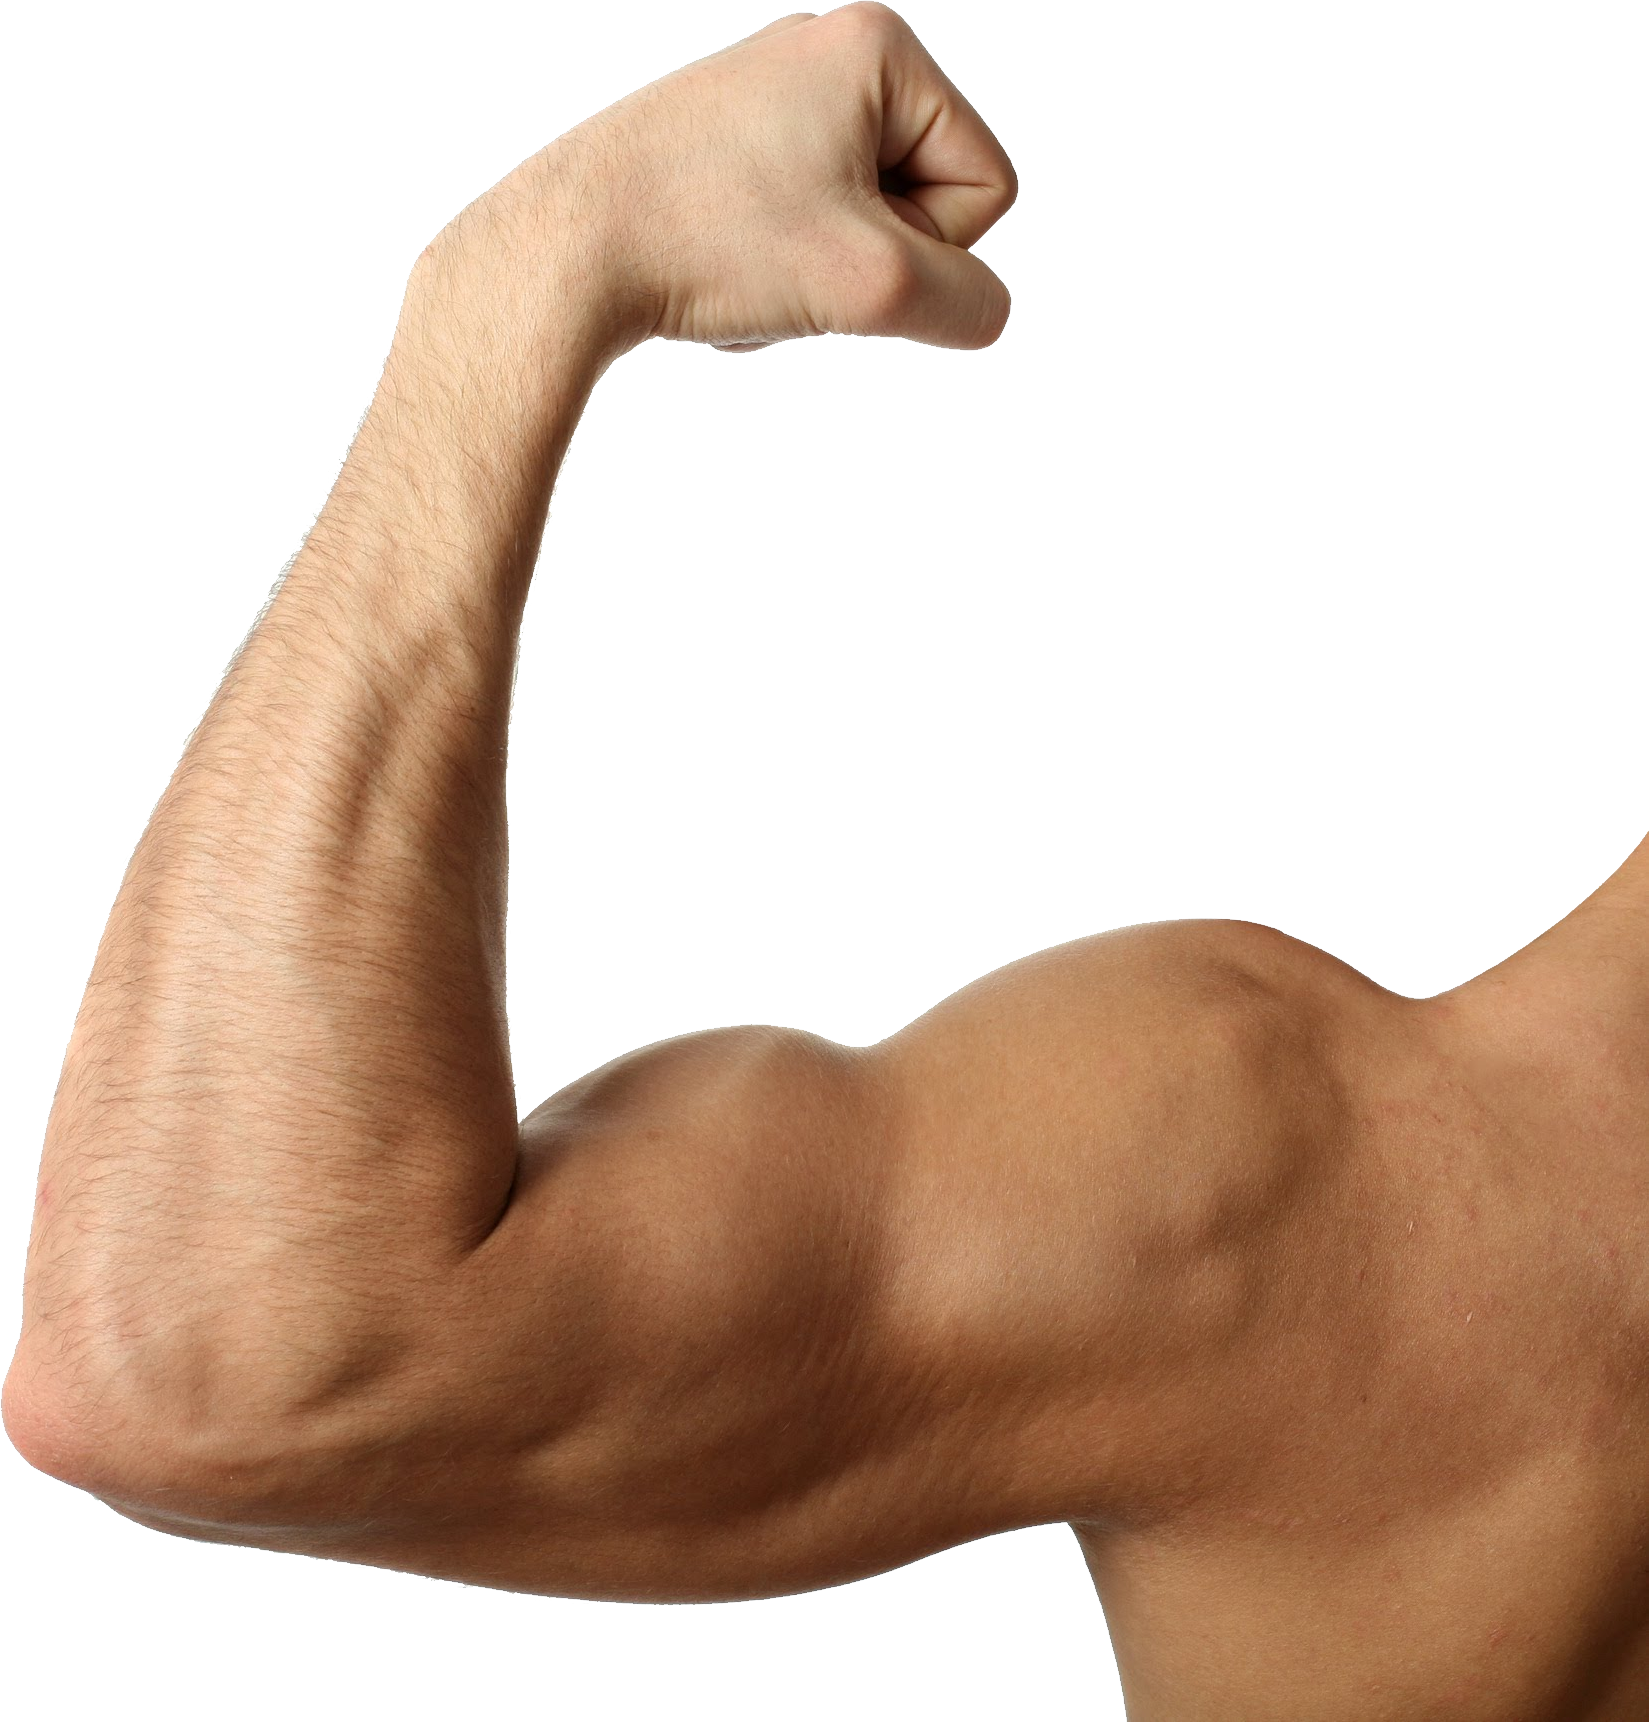 Muscle clipart transparent background. Png image purepng free